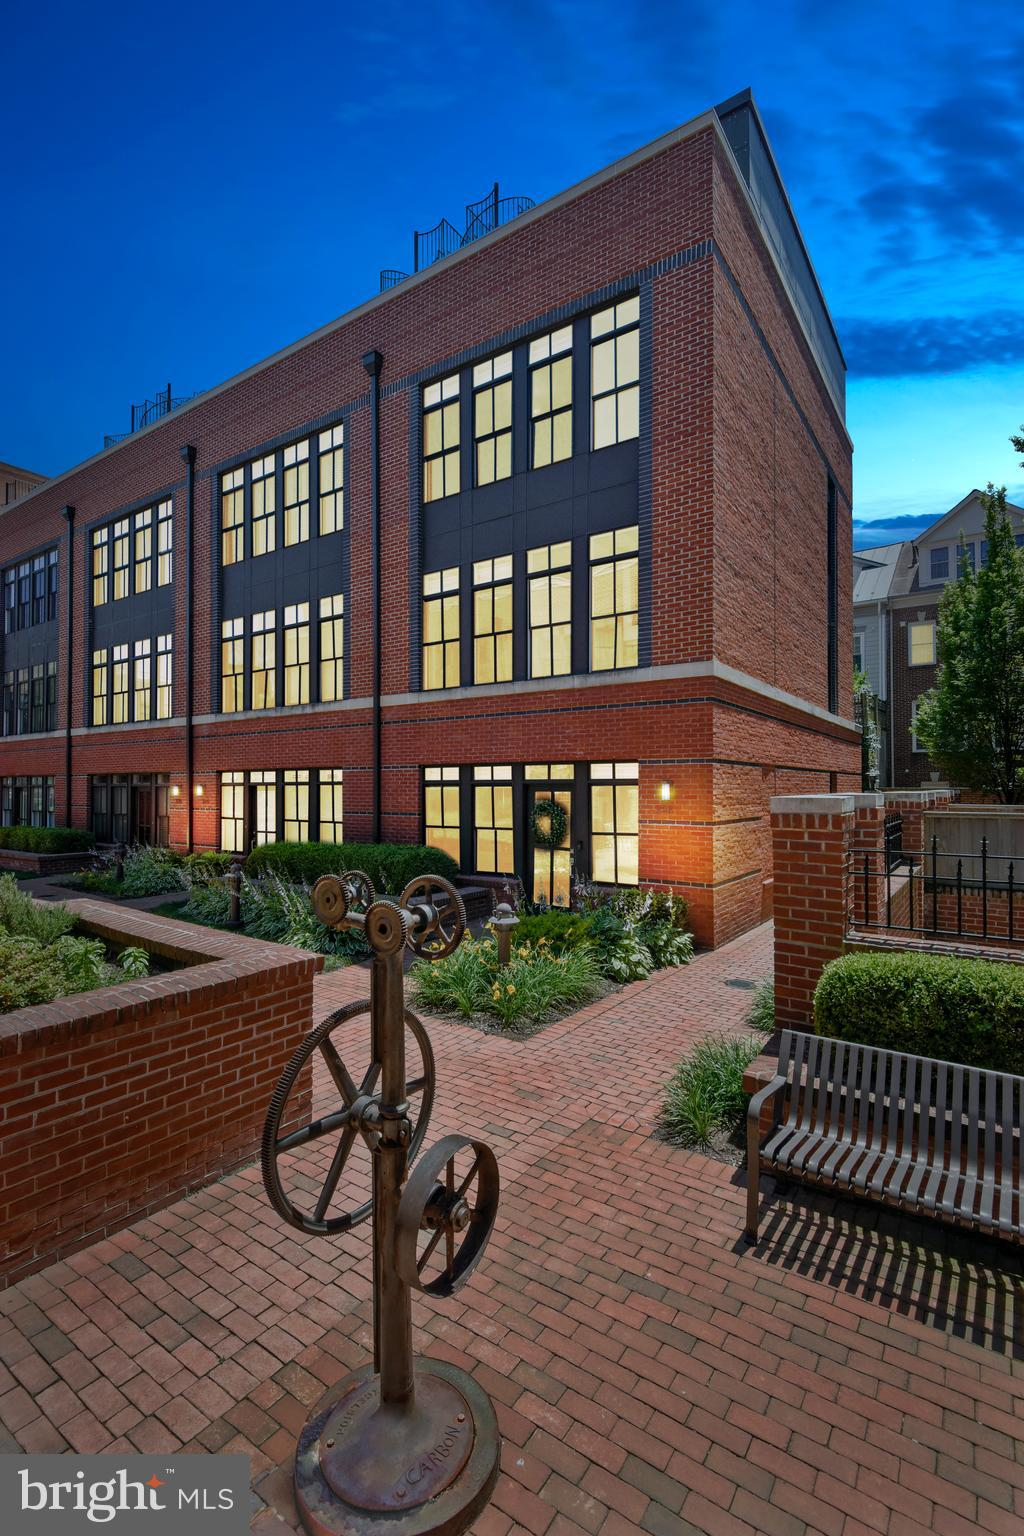 Beautiful luxury end unit townhome in Printers Row!  This private gated enclave of North Old Town is situated steps away from the Mount Vernon Trail, riverfront parks and the George Washington Memorial Parkway for easy access to DC.  Walking distance to everything King Street has to offer: restaurants, bars, shops, art galleries and more.  With the arrival of Amazon HQ2, the Virginia Tech Campus and plans for the new Arts Corridor in North Old Town, this is an amazing opportunity to get in early!  This home has so much to offer for contemporary Old Town living: huge windows throughout provide wonderful natural light to this bright, open space.  328 Third Street boasts many upgrades and custom features not available in other units, including a walk-in first floor pantry and coat closet, a walk-in 4th floor storage closet and a 4th floor wet bar.  Other upgrades and features include new quartz kitchen counter-tops and island, white subway tile back-splash, custom closets and built-in chest of drawers in the master bedroom, and custom closets in 2 additional bedrooms on the 3rd level and laundry space.  Fantastic open floor plan on the main level with Wolf gas range, Zephyr hood range and Kitchen Aid refrigerator and dishwasher.  Upgraded light fixtures throughout.  All levels have been freshly painted and a new furnace installed in 2018.  The entire 2nd level is dedicated to a fabulous Master Suite including a large master bath with double vanity, shower and Victoria & Albert bathtub.  4 separate outdoor spaces are perfect for relaxing and entertaining, including a main level patio, master bedroom balcony, 4th level terrace and rare rooftop sun deck with unparalleled views of the Potomac River and DC!  A rare Old Town gem!